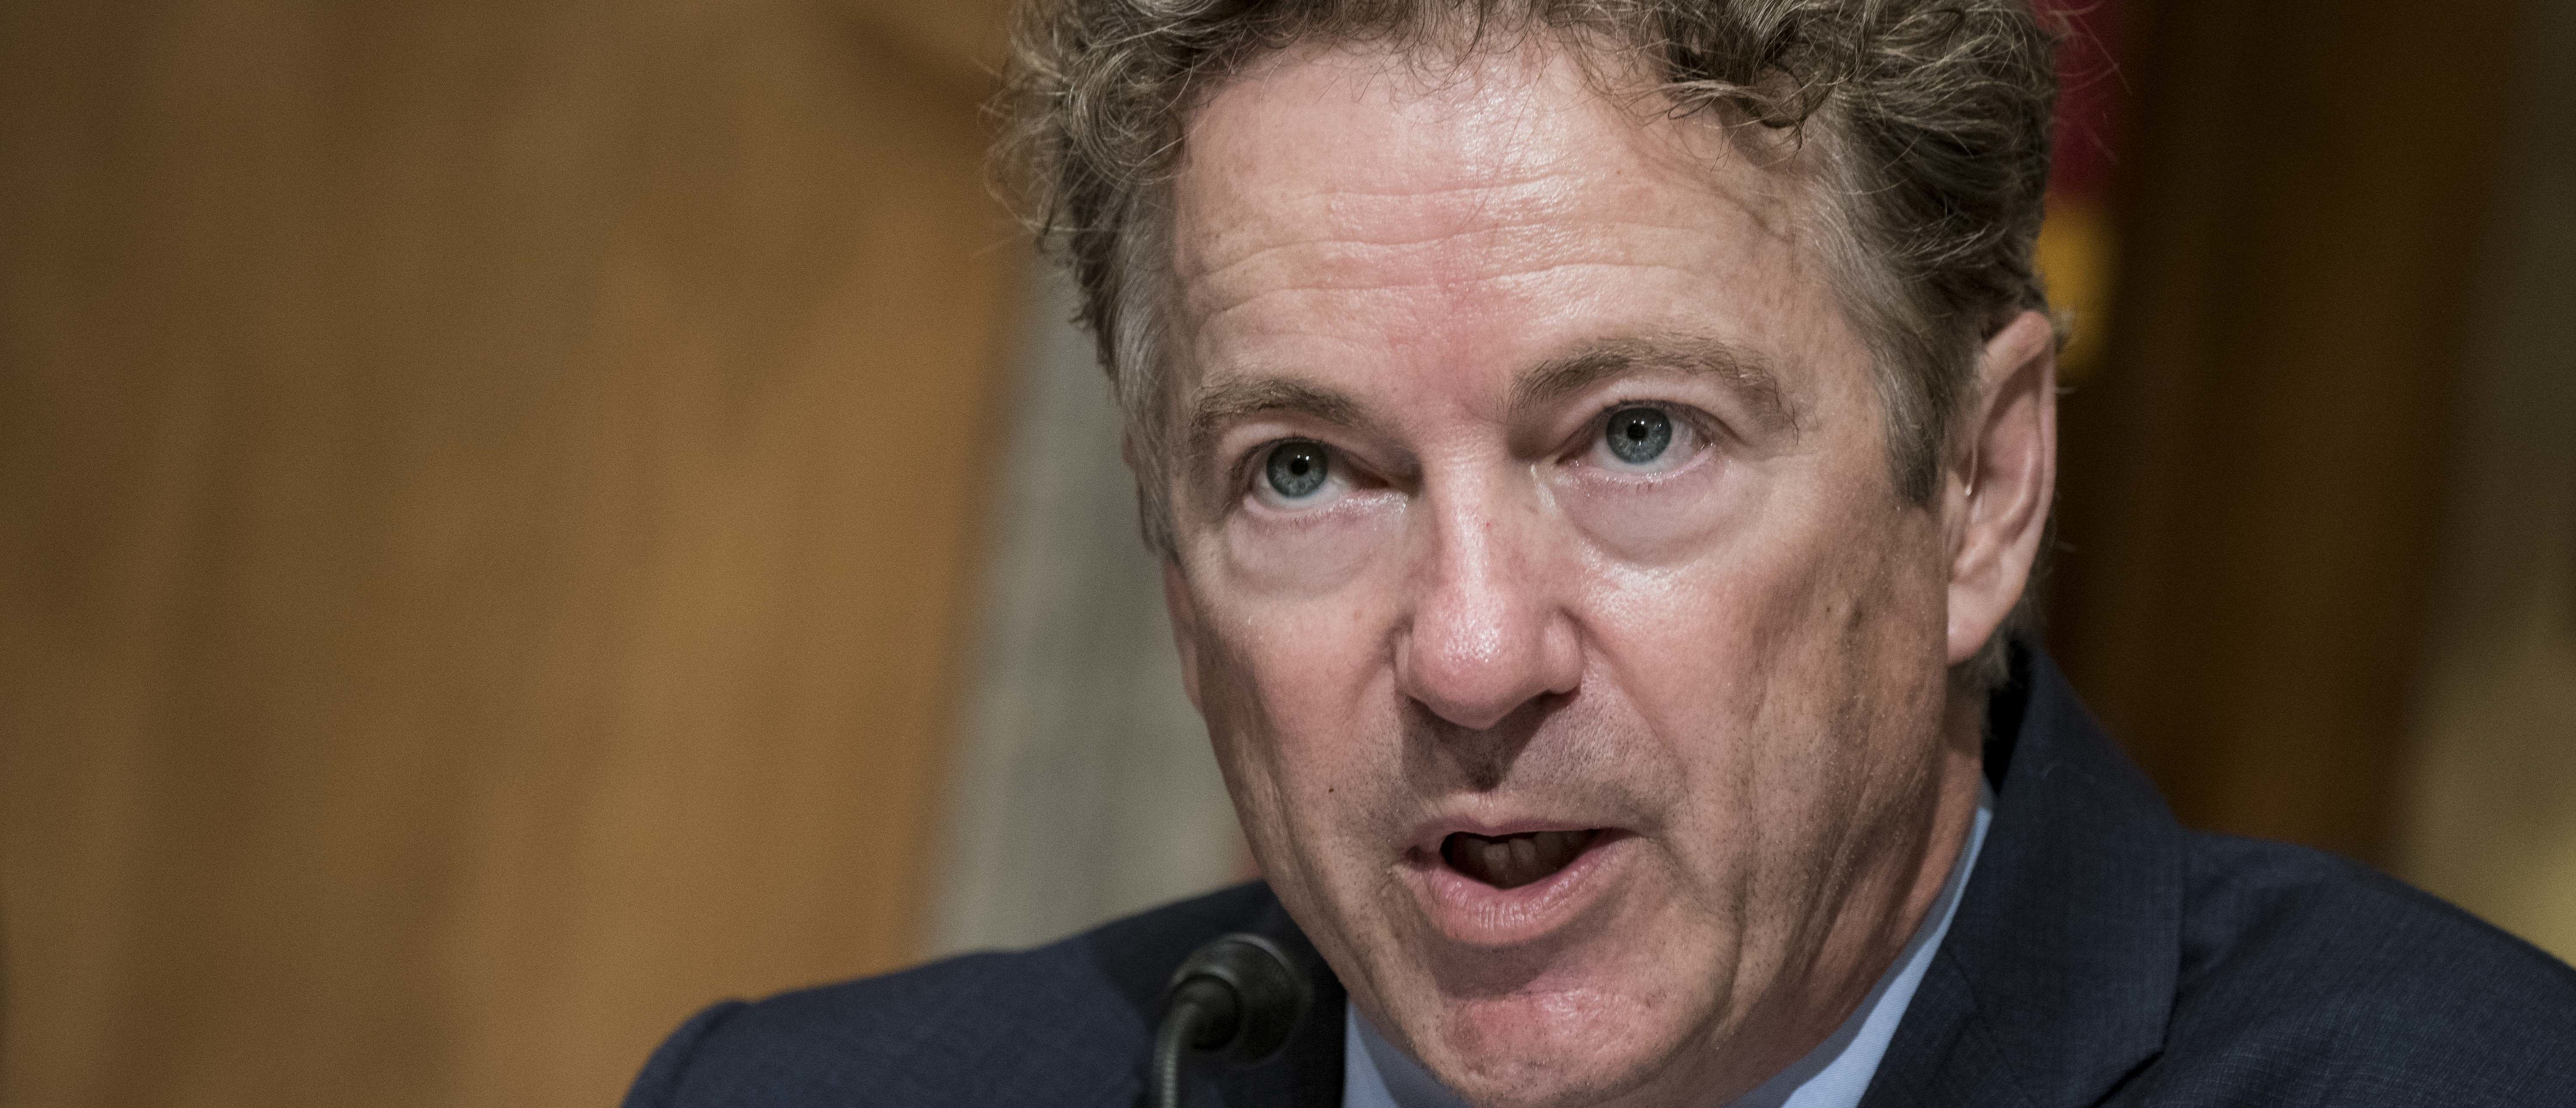 Rand Paul tests positive for coronavirus — first known senator to test positive